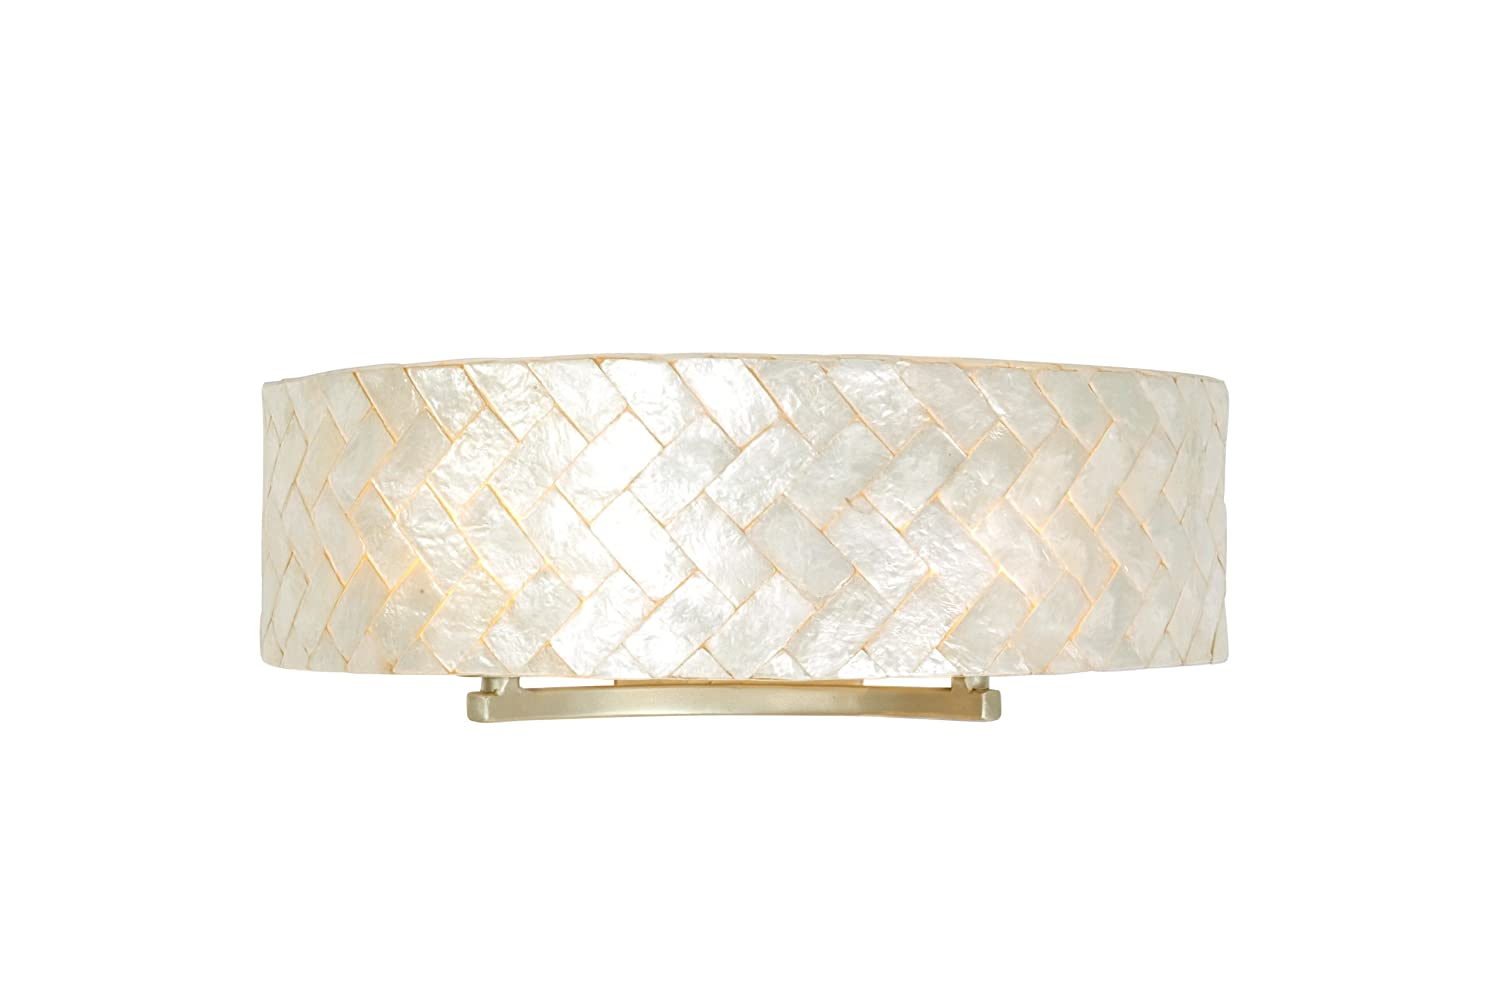 capiz lighting fixtures. contemporary fixtures radius 2light vanity  gold dust finish with sustainable herringbone of  natural capiz shell shade lighting fixtures amazoncom intended